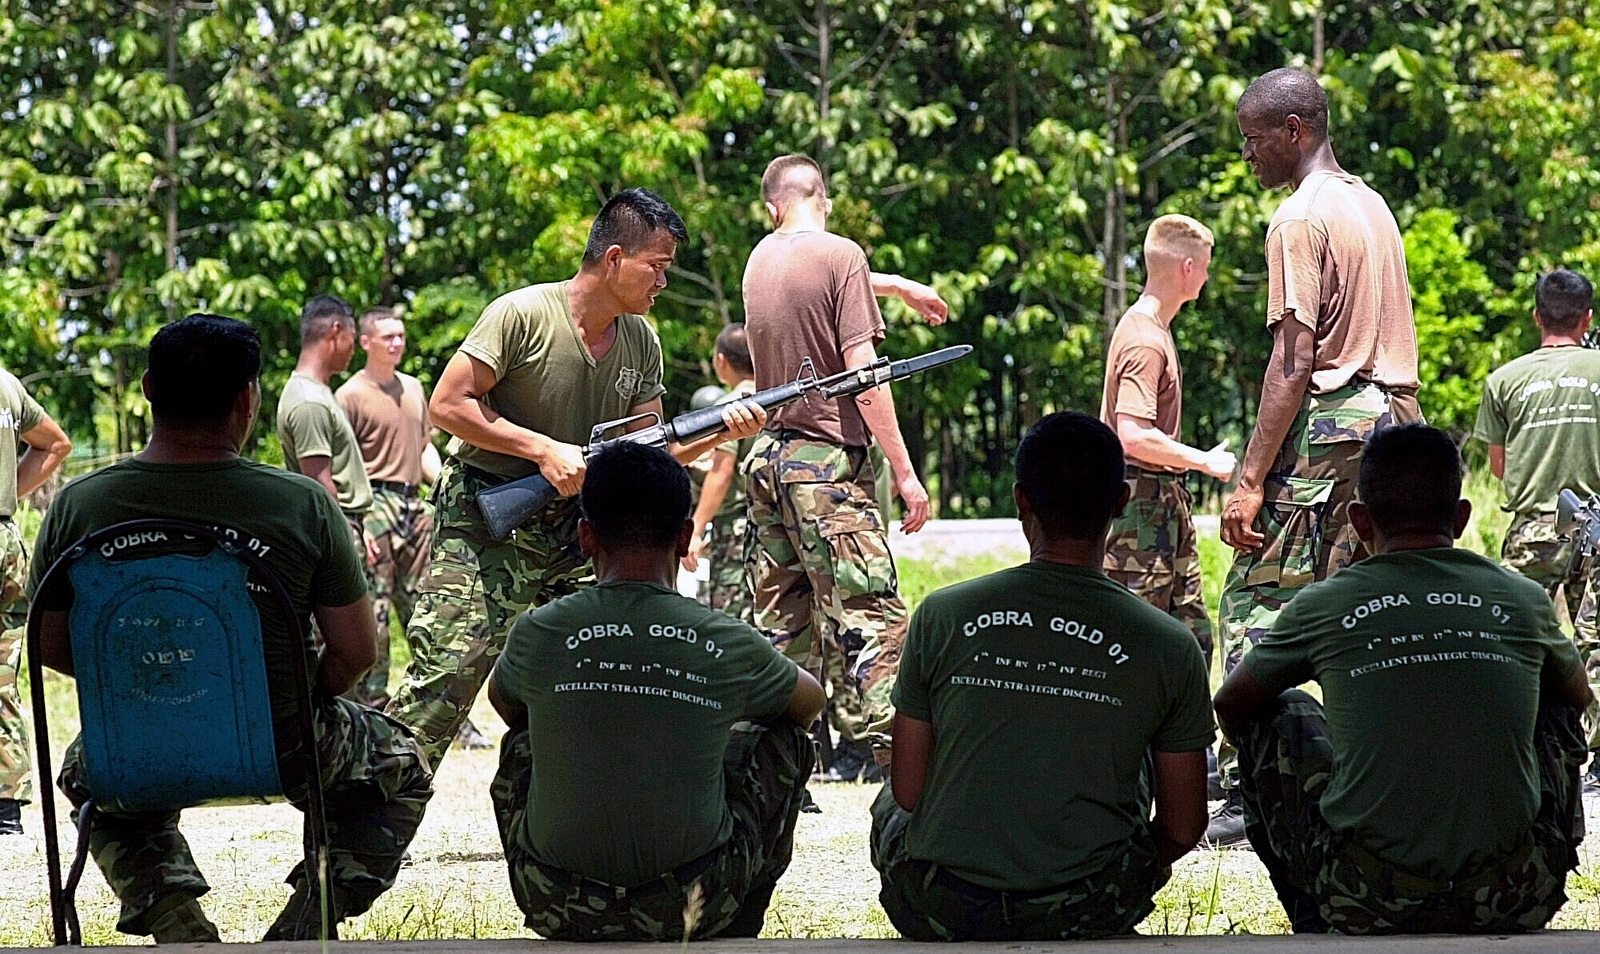 US Army soldiers from the 1ST Special Forces Group, Fort Lewis, Washington, receive hand-to-hand combat training from members in the Royal Thai Army during this year's Exercise COBRA GOLD 2001. CG '01 is a regularly scheduled, joint-combined exercise designed to ensure regional peace and strengthen the ability of the royal Thai Armed Forces to defend Thailand or respond to regional contingencies. This year's exercise, the 20th in the series, will focus on peace enforcement operations